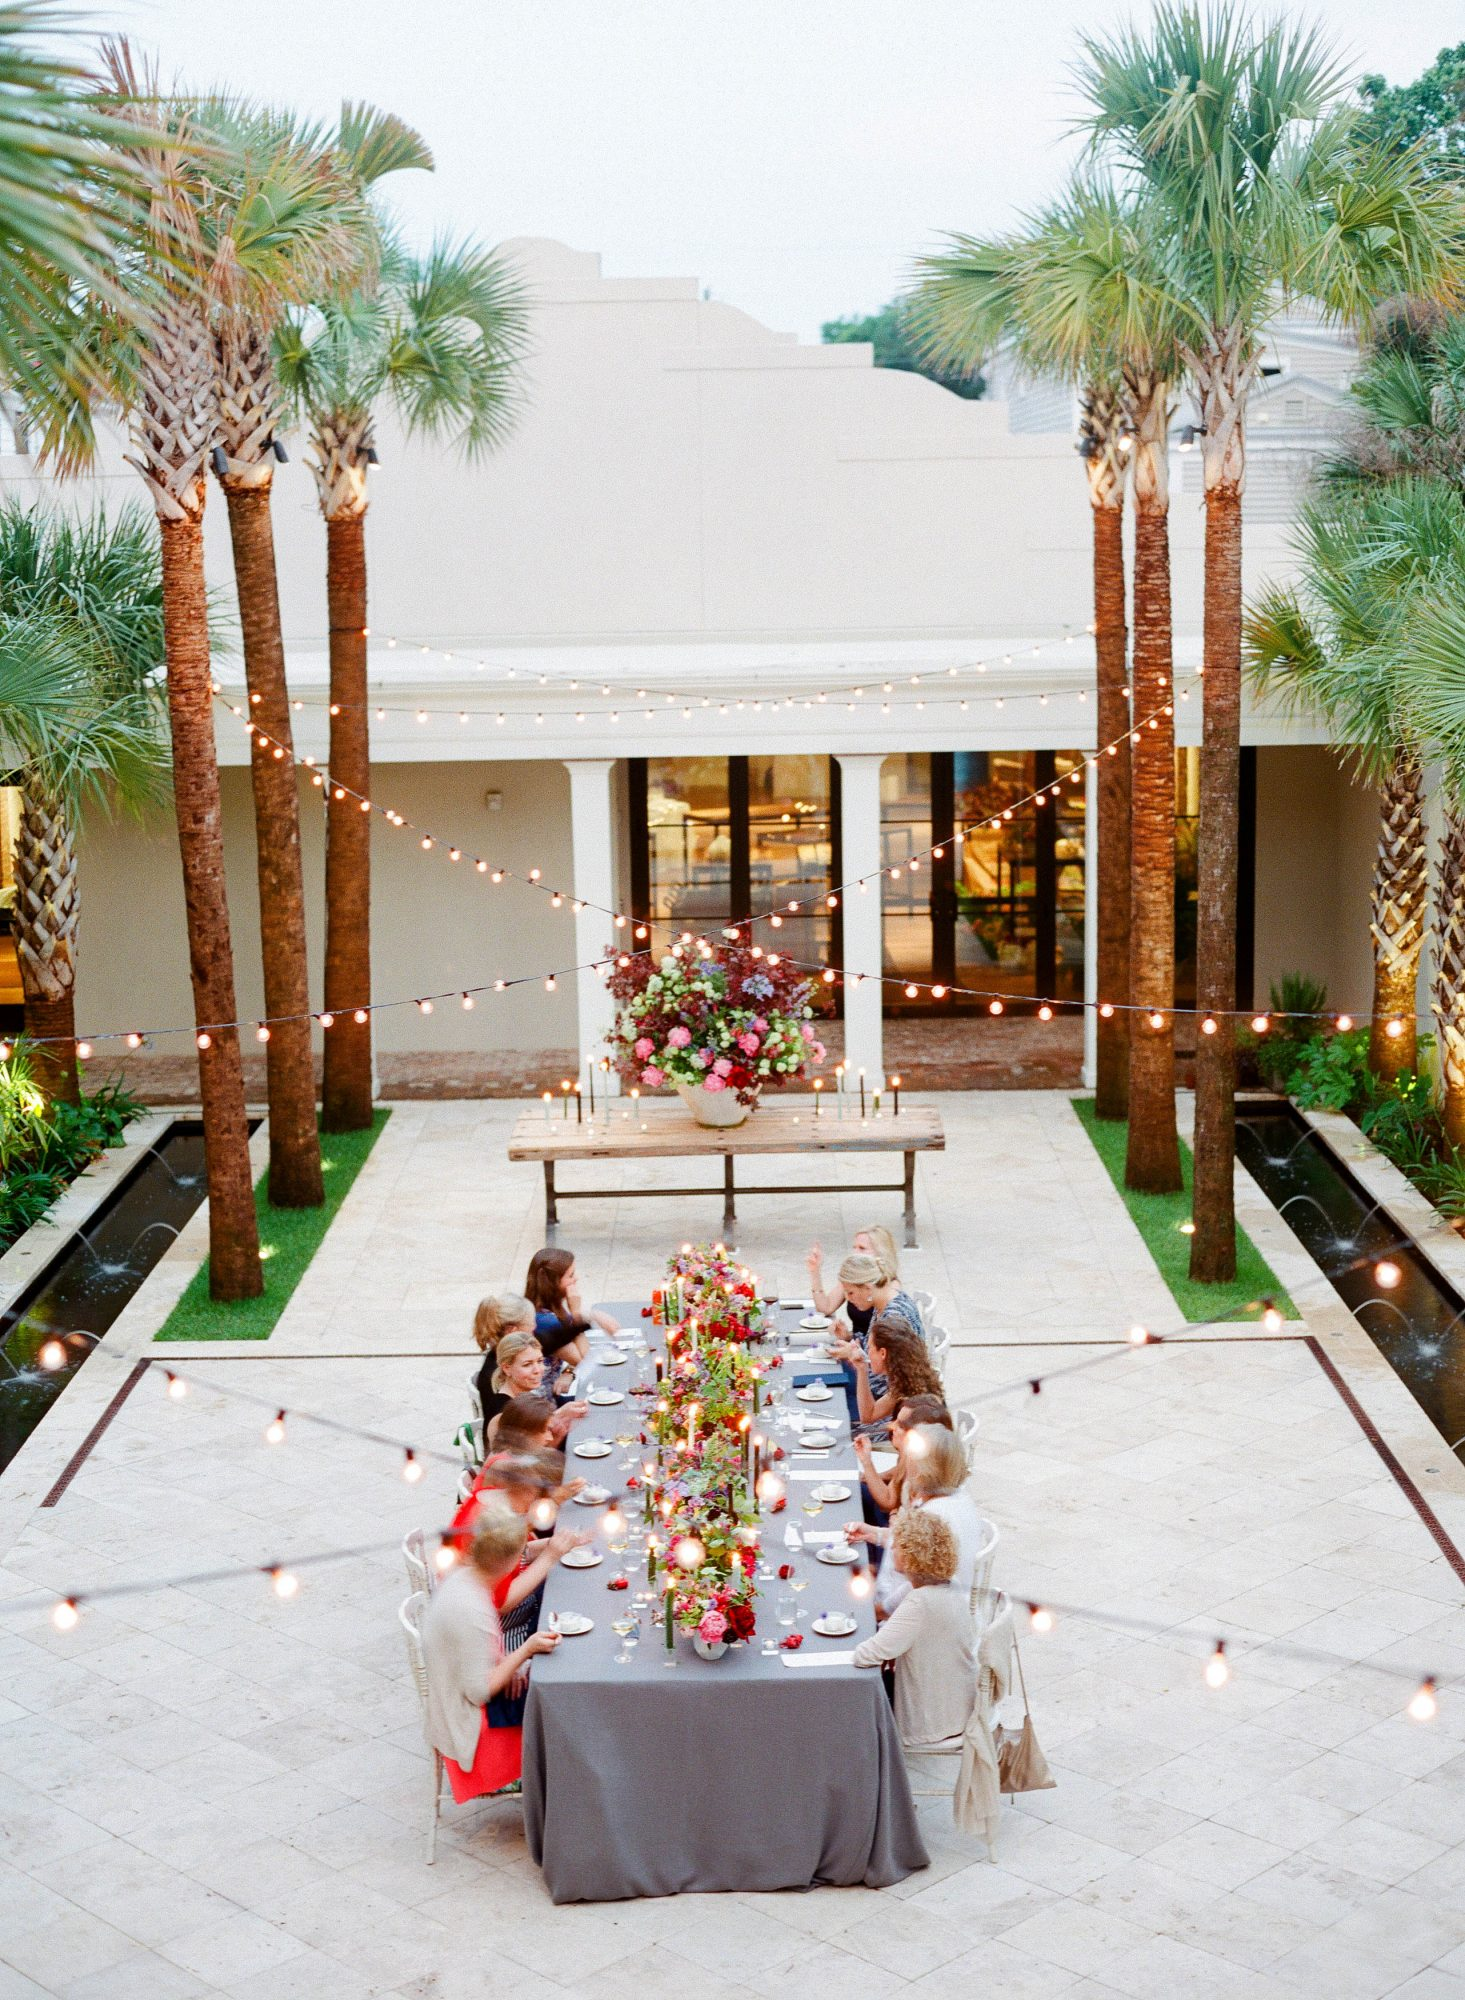 guests enjoying outdoor dinner with floral and candle centerpieces